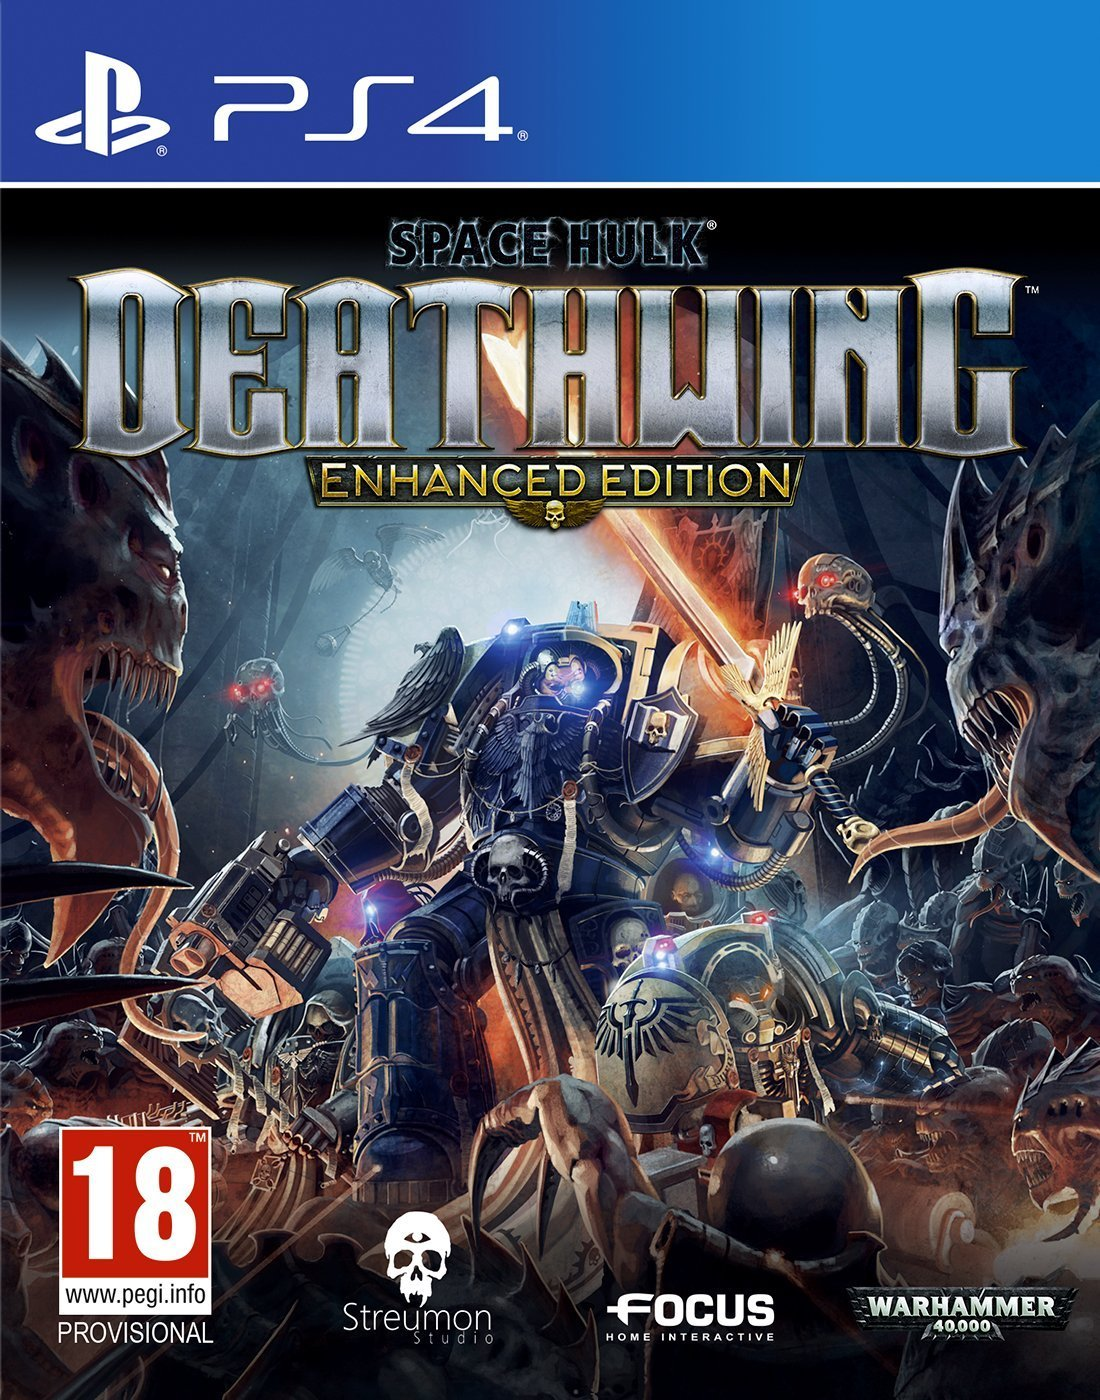 Spacehulk Deathwing Enhanced Edition